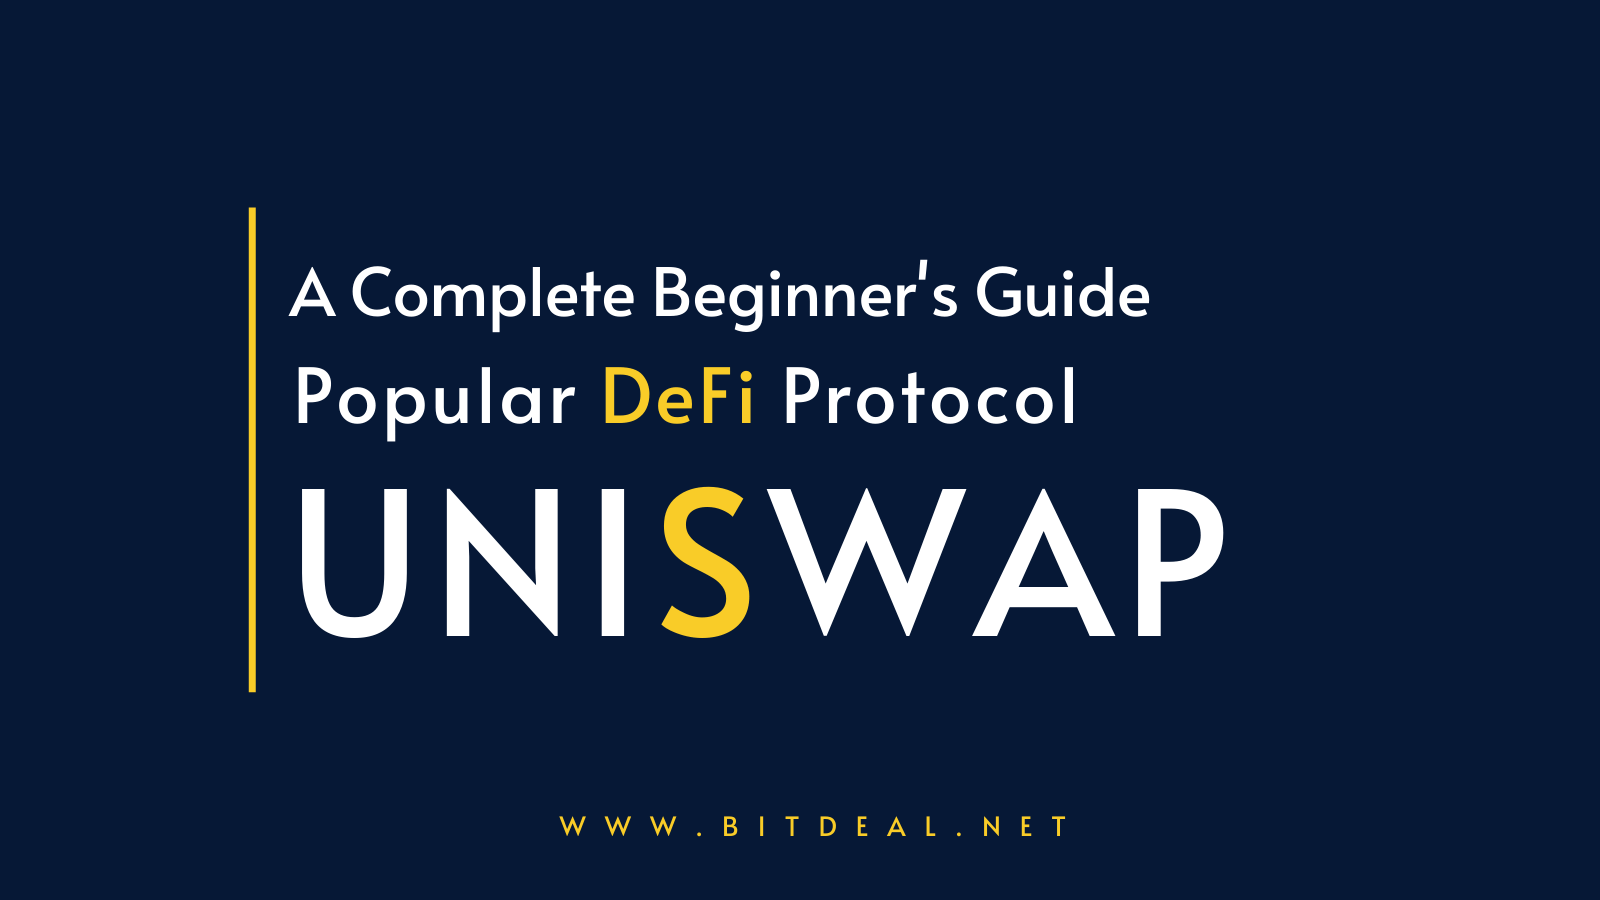 The Ultimate Guide To Uniswap : A DeFi Based DEX Exchange